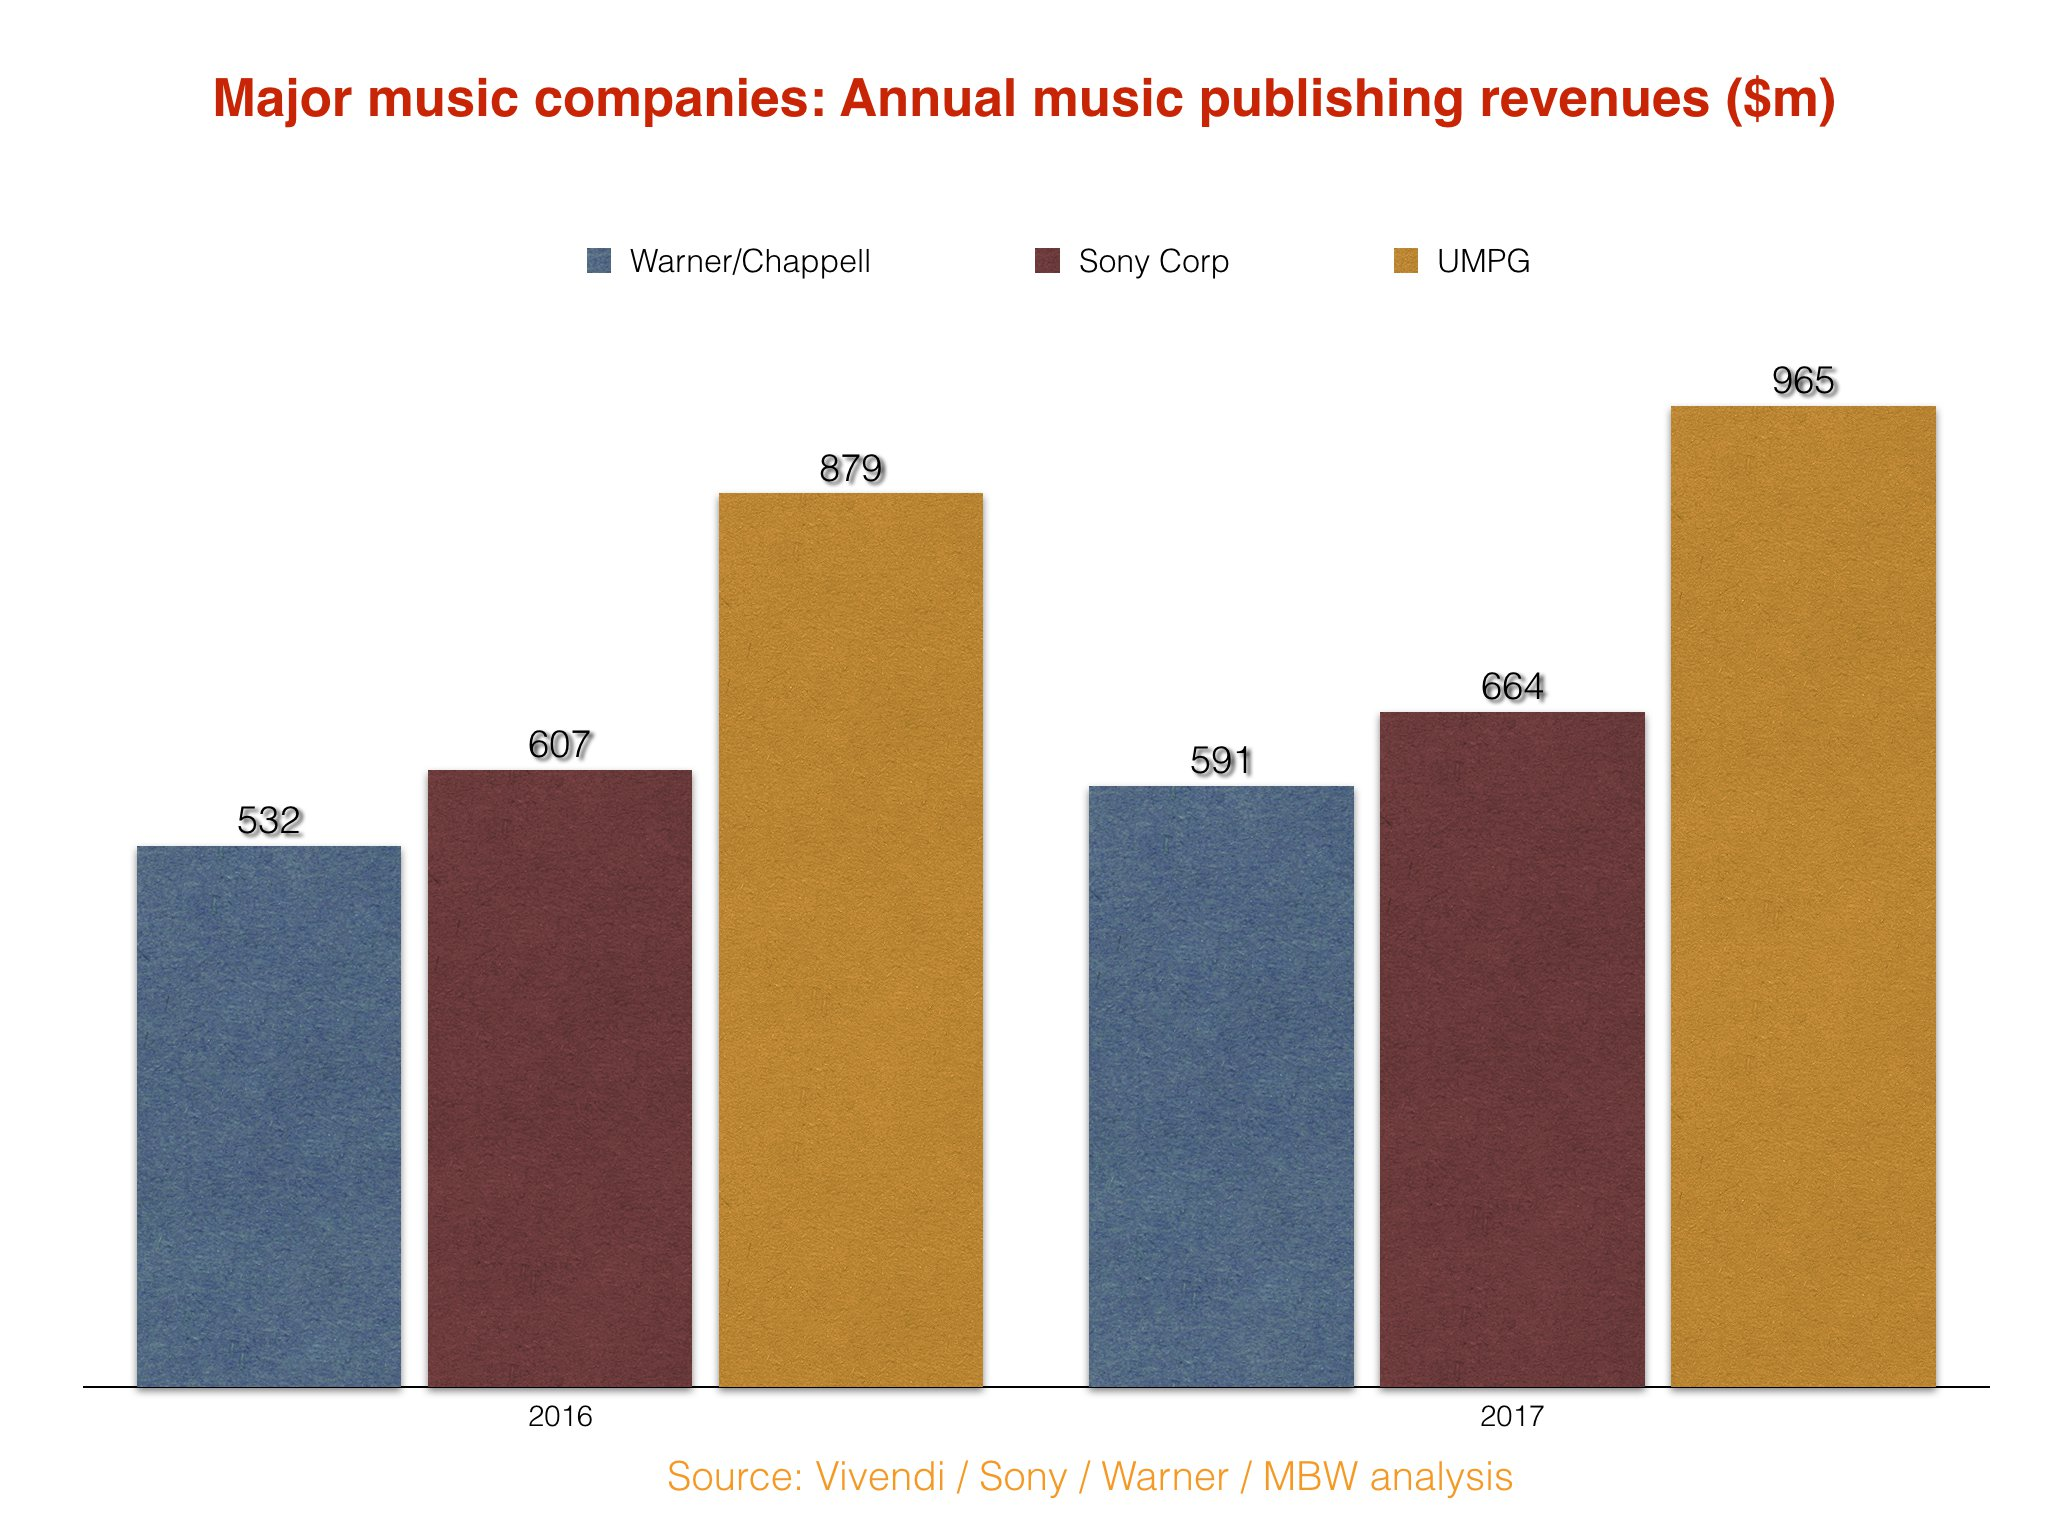 Sony is technically the biggest music company in the world (but it's